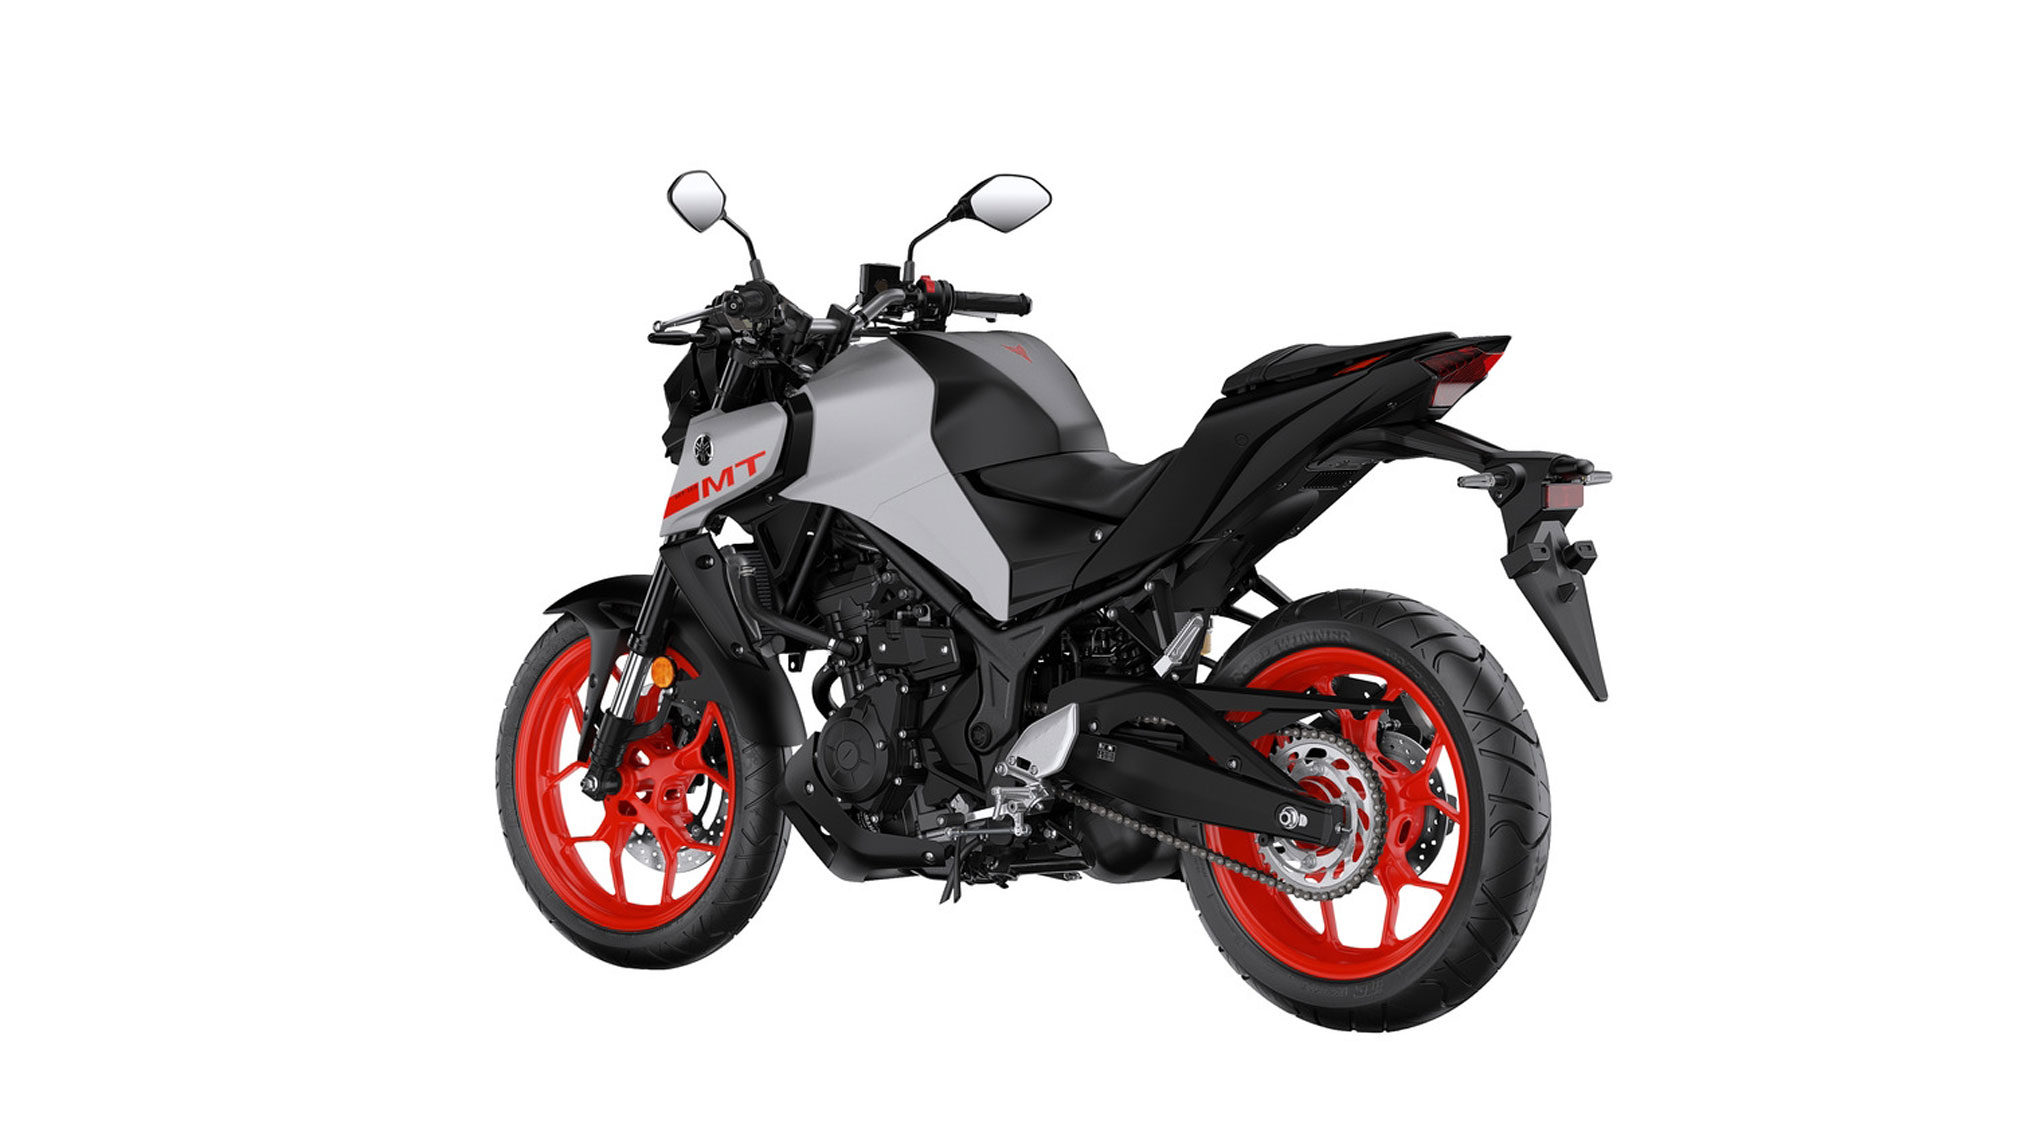 2020 Yamaha MT-03 Review (13 Fast Facts) Ultimate Motorcycling